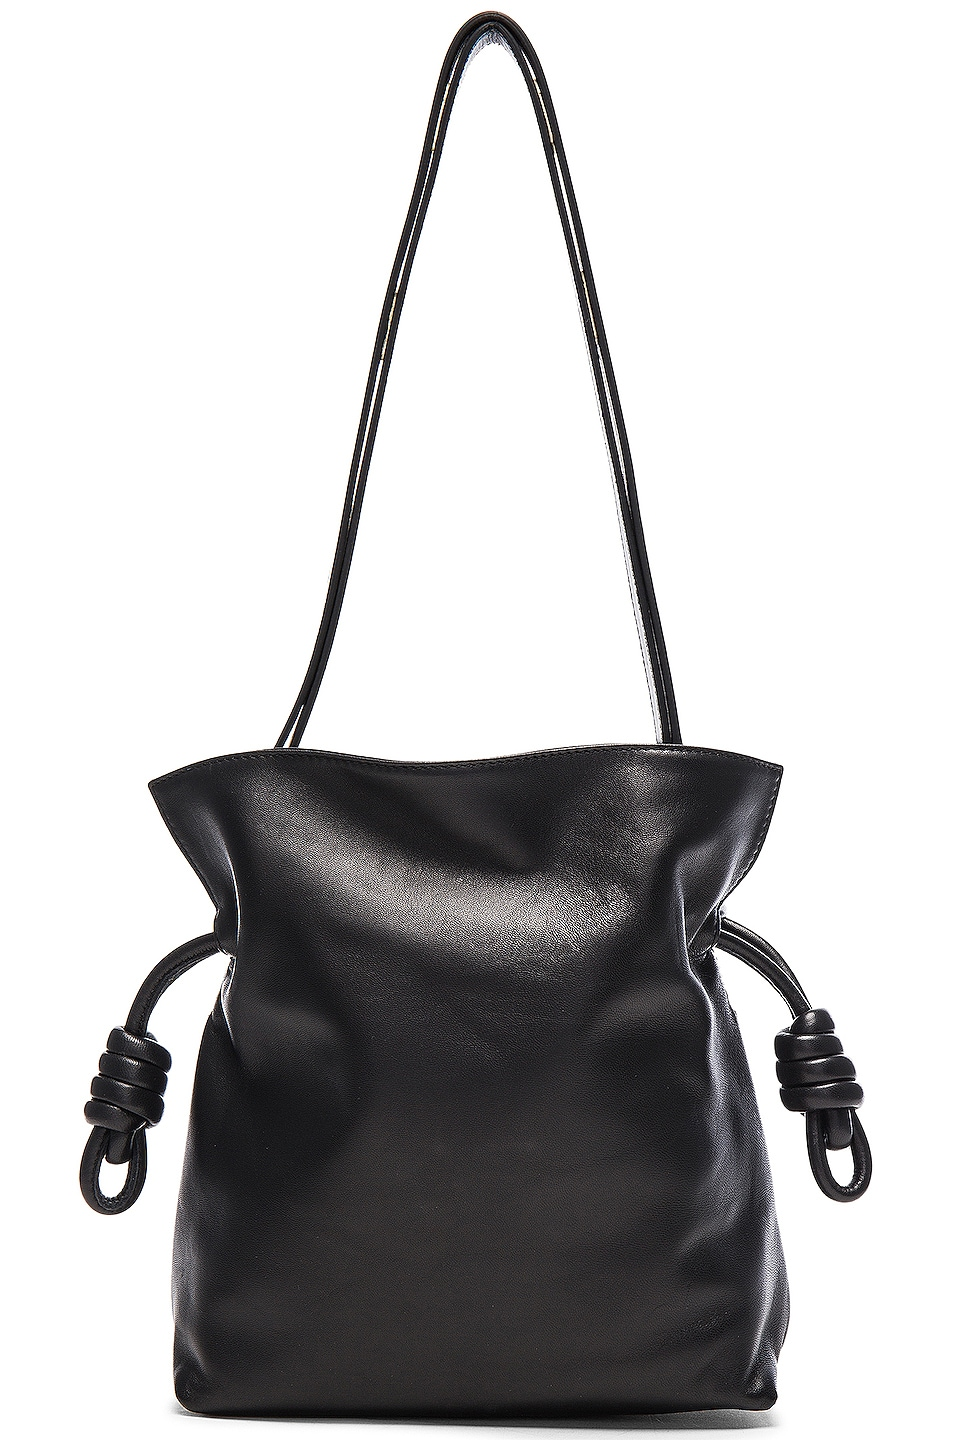 Image 1 of Loewe Flamenco Knot Bag in Black